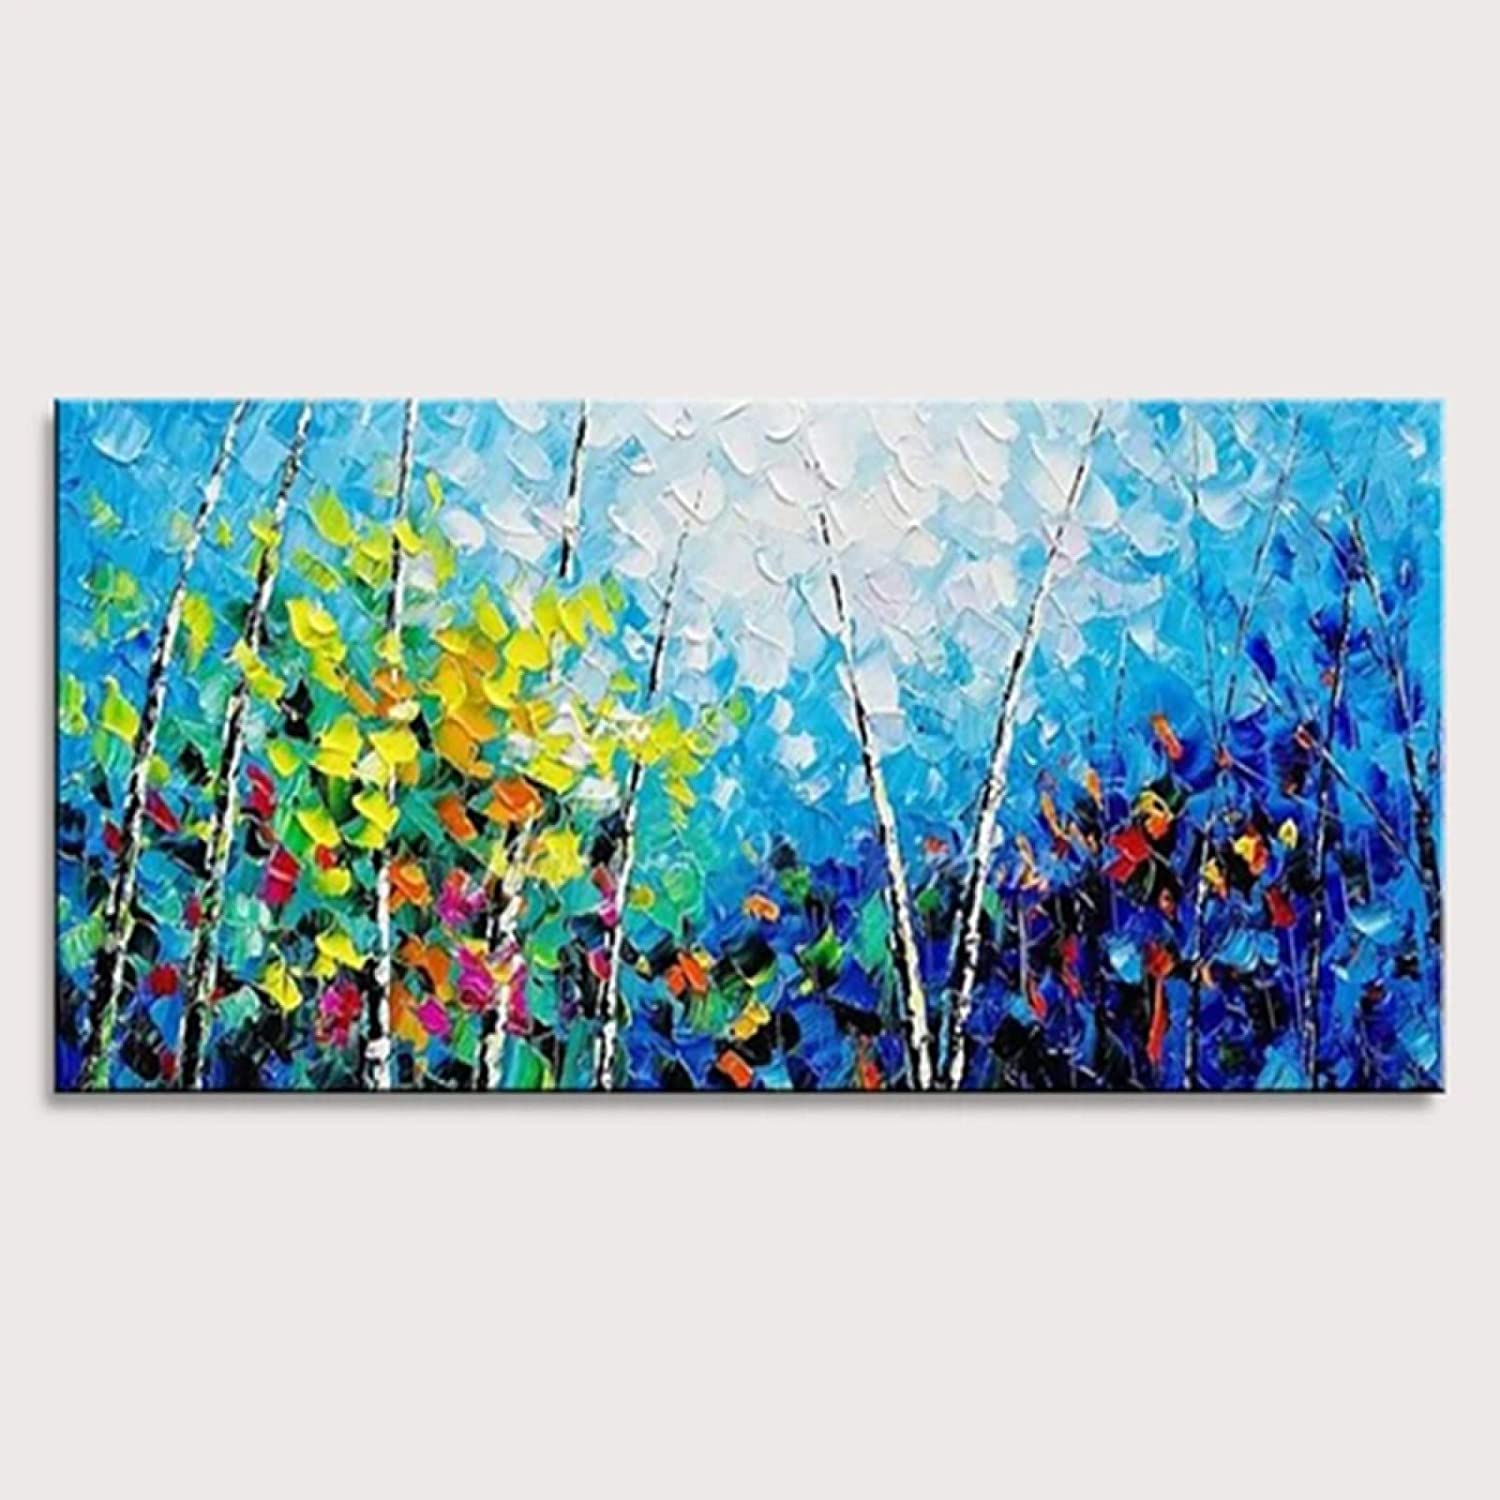 GXRGXR Hand Painted Oil Painting,Modern Art Canvas Prints Wall 100% Hand Painted Landscape Oil Paintings Abstract Forest Wall Art Picture for Living Room Bedroom Decorations,140×280Cm